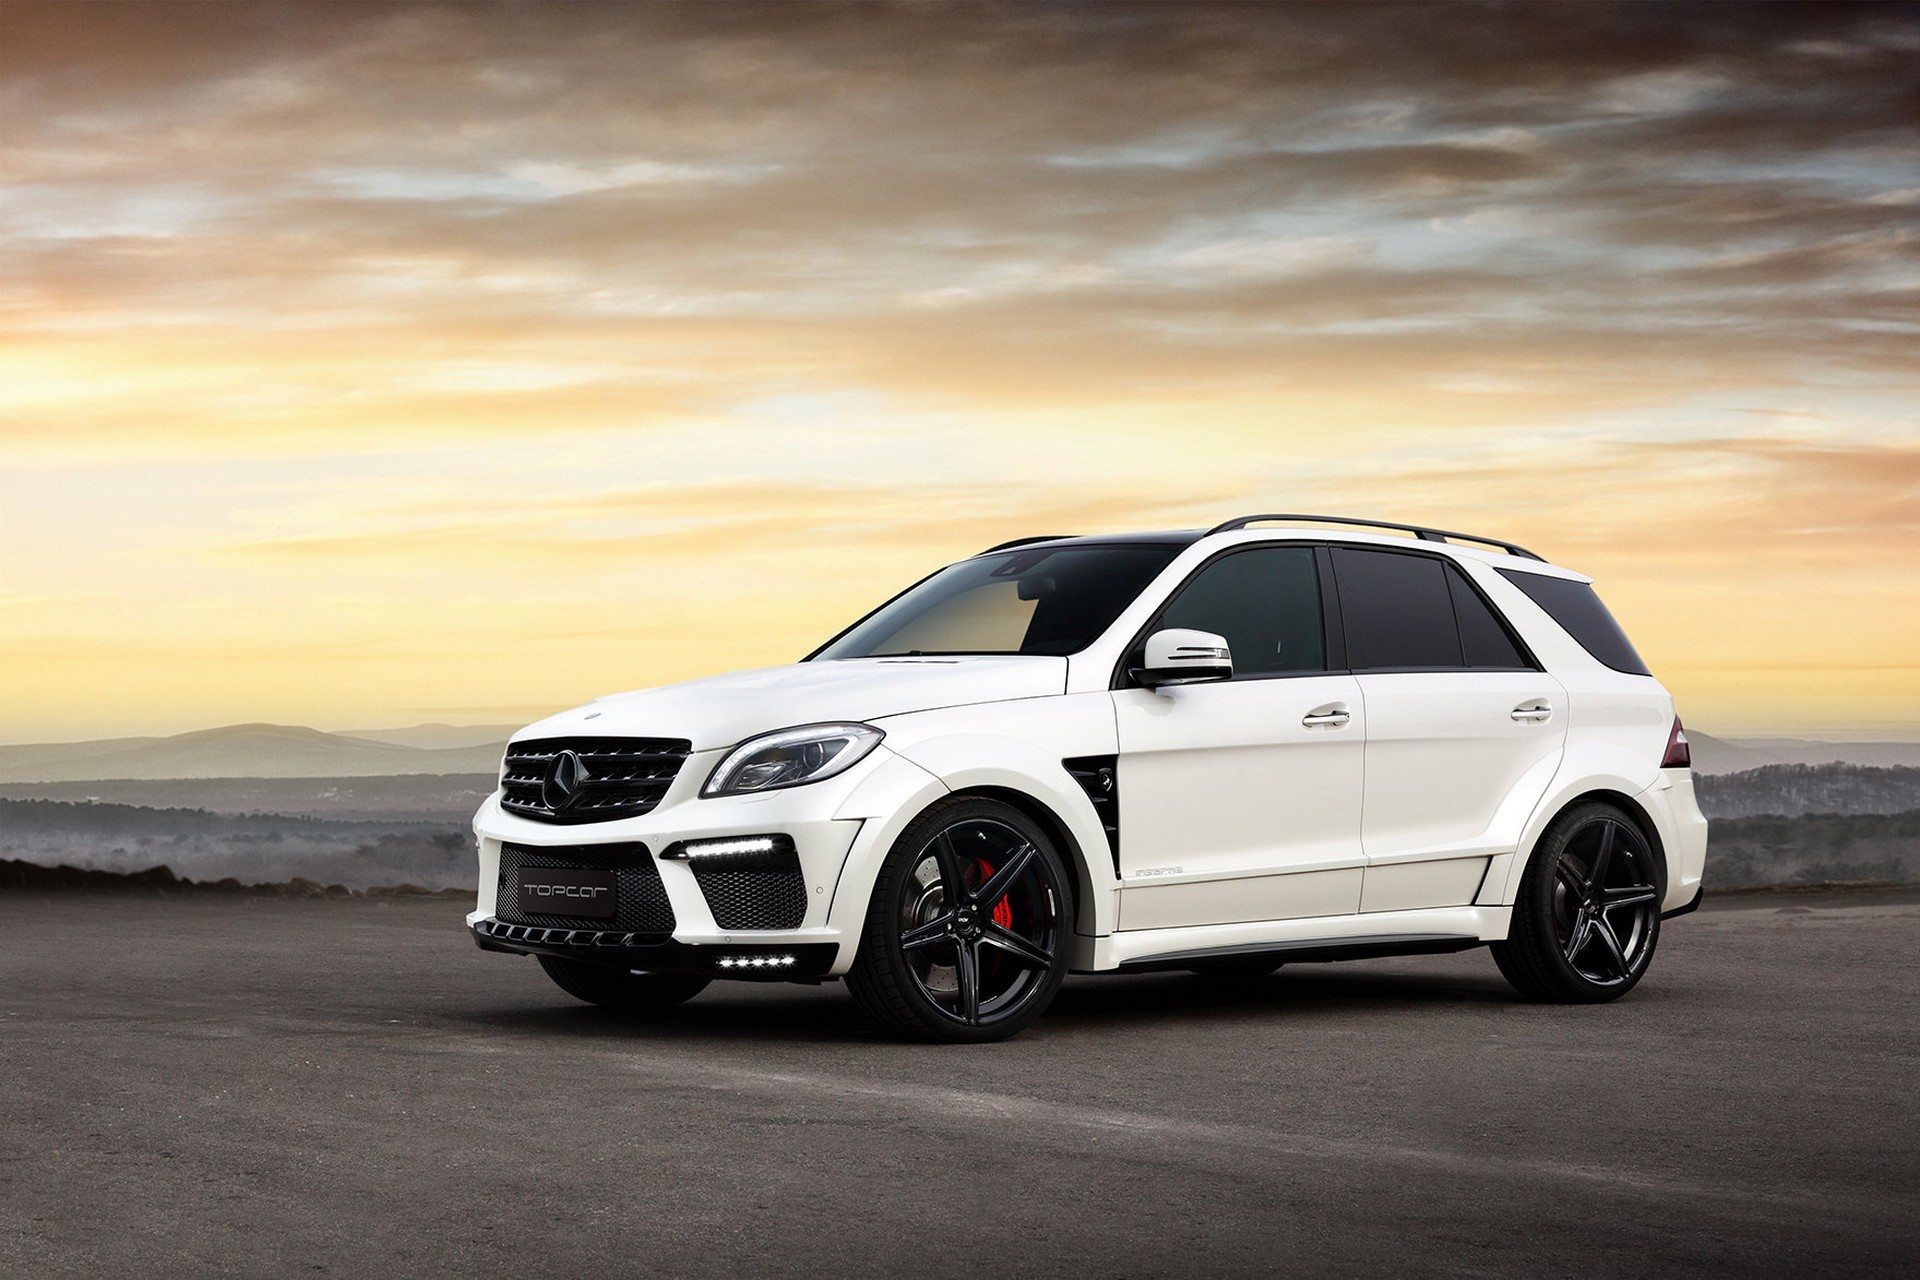 mercedes benz ml w166 6 3 amg inferno white topcar. Black Bedroom Furniture Sets. Home Design Ideas